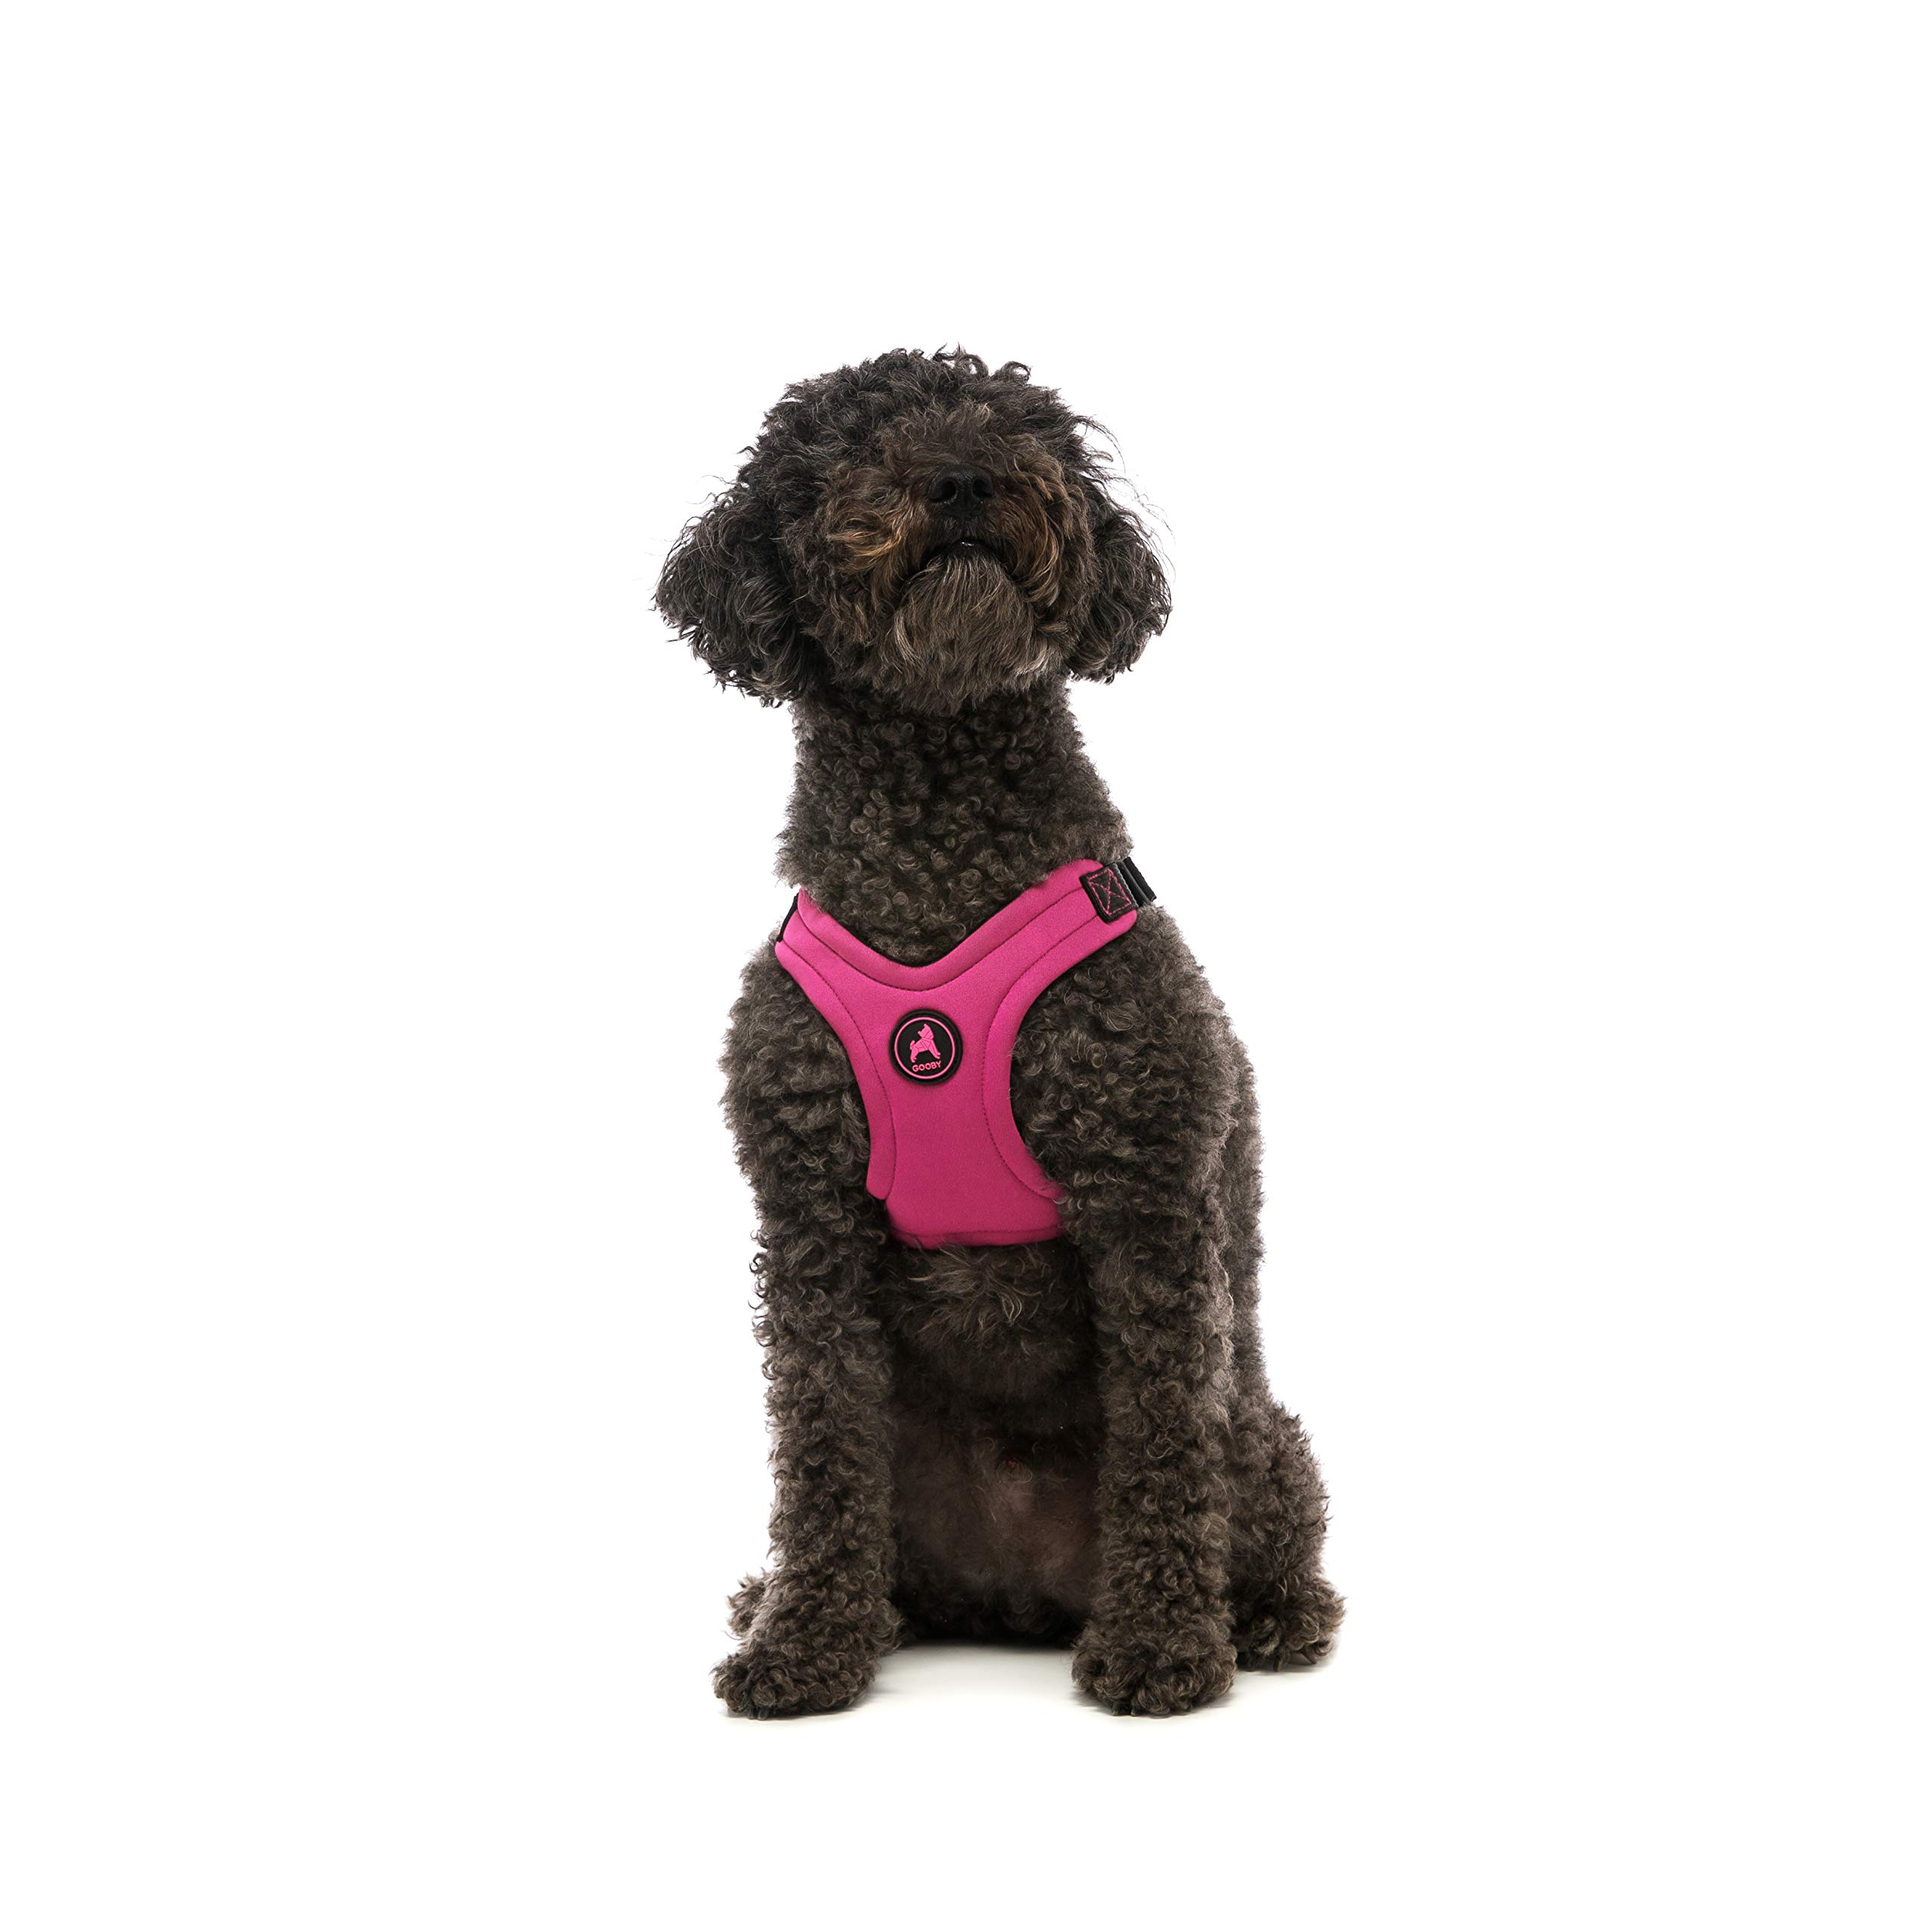 Gooby - Escape Free Sport Harness, Small Dog Step-in Neoprene Harness for Dogs That Like to Escape Their Harness, Pink, Medium